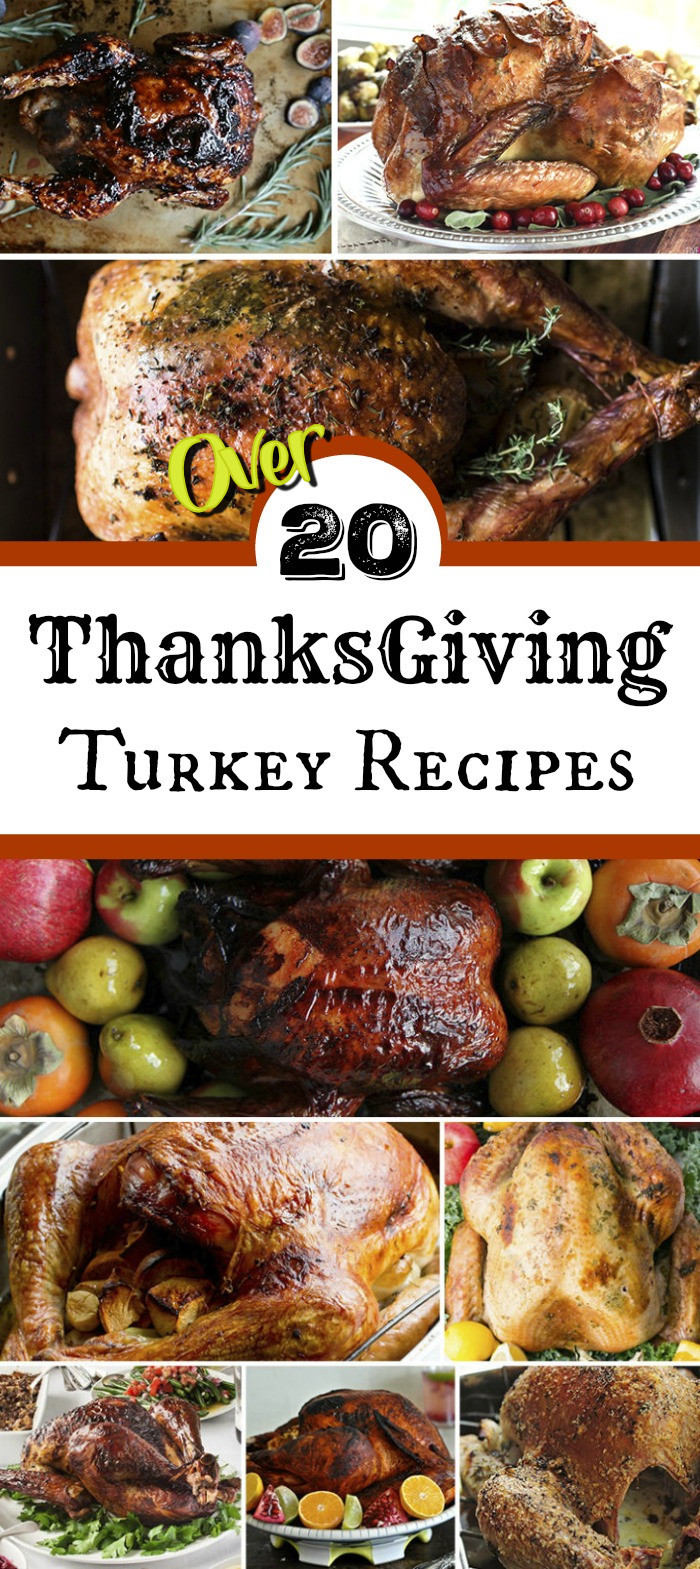 Turkey Thanksgiving Recipe  Thanksgiving Turkey Recipes for the Best Thanksgiving